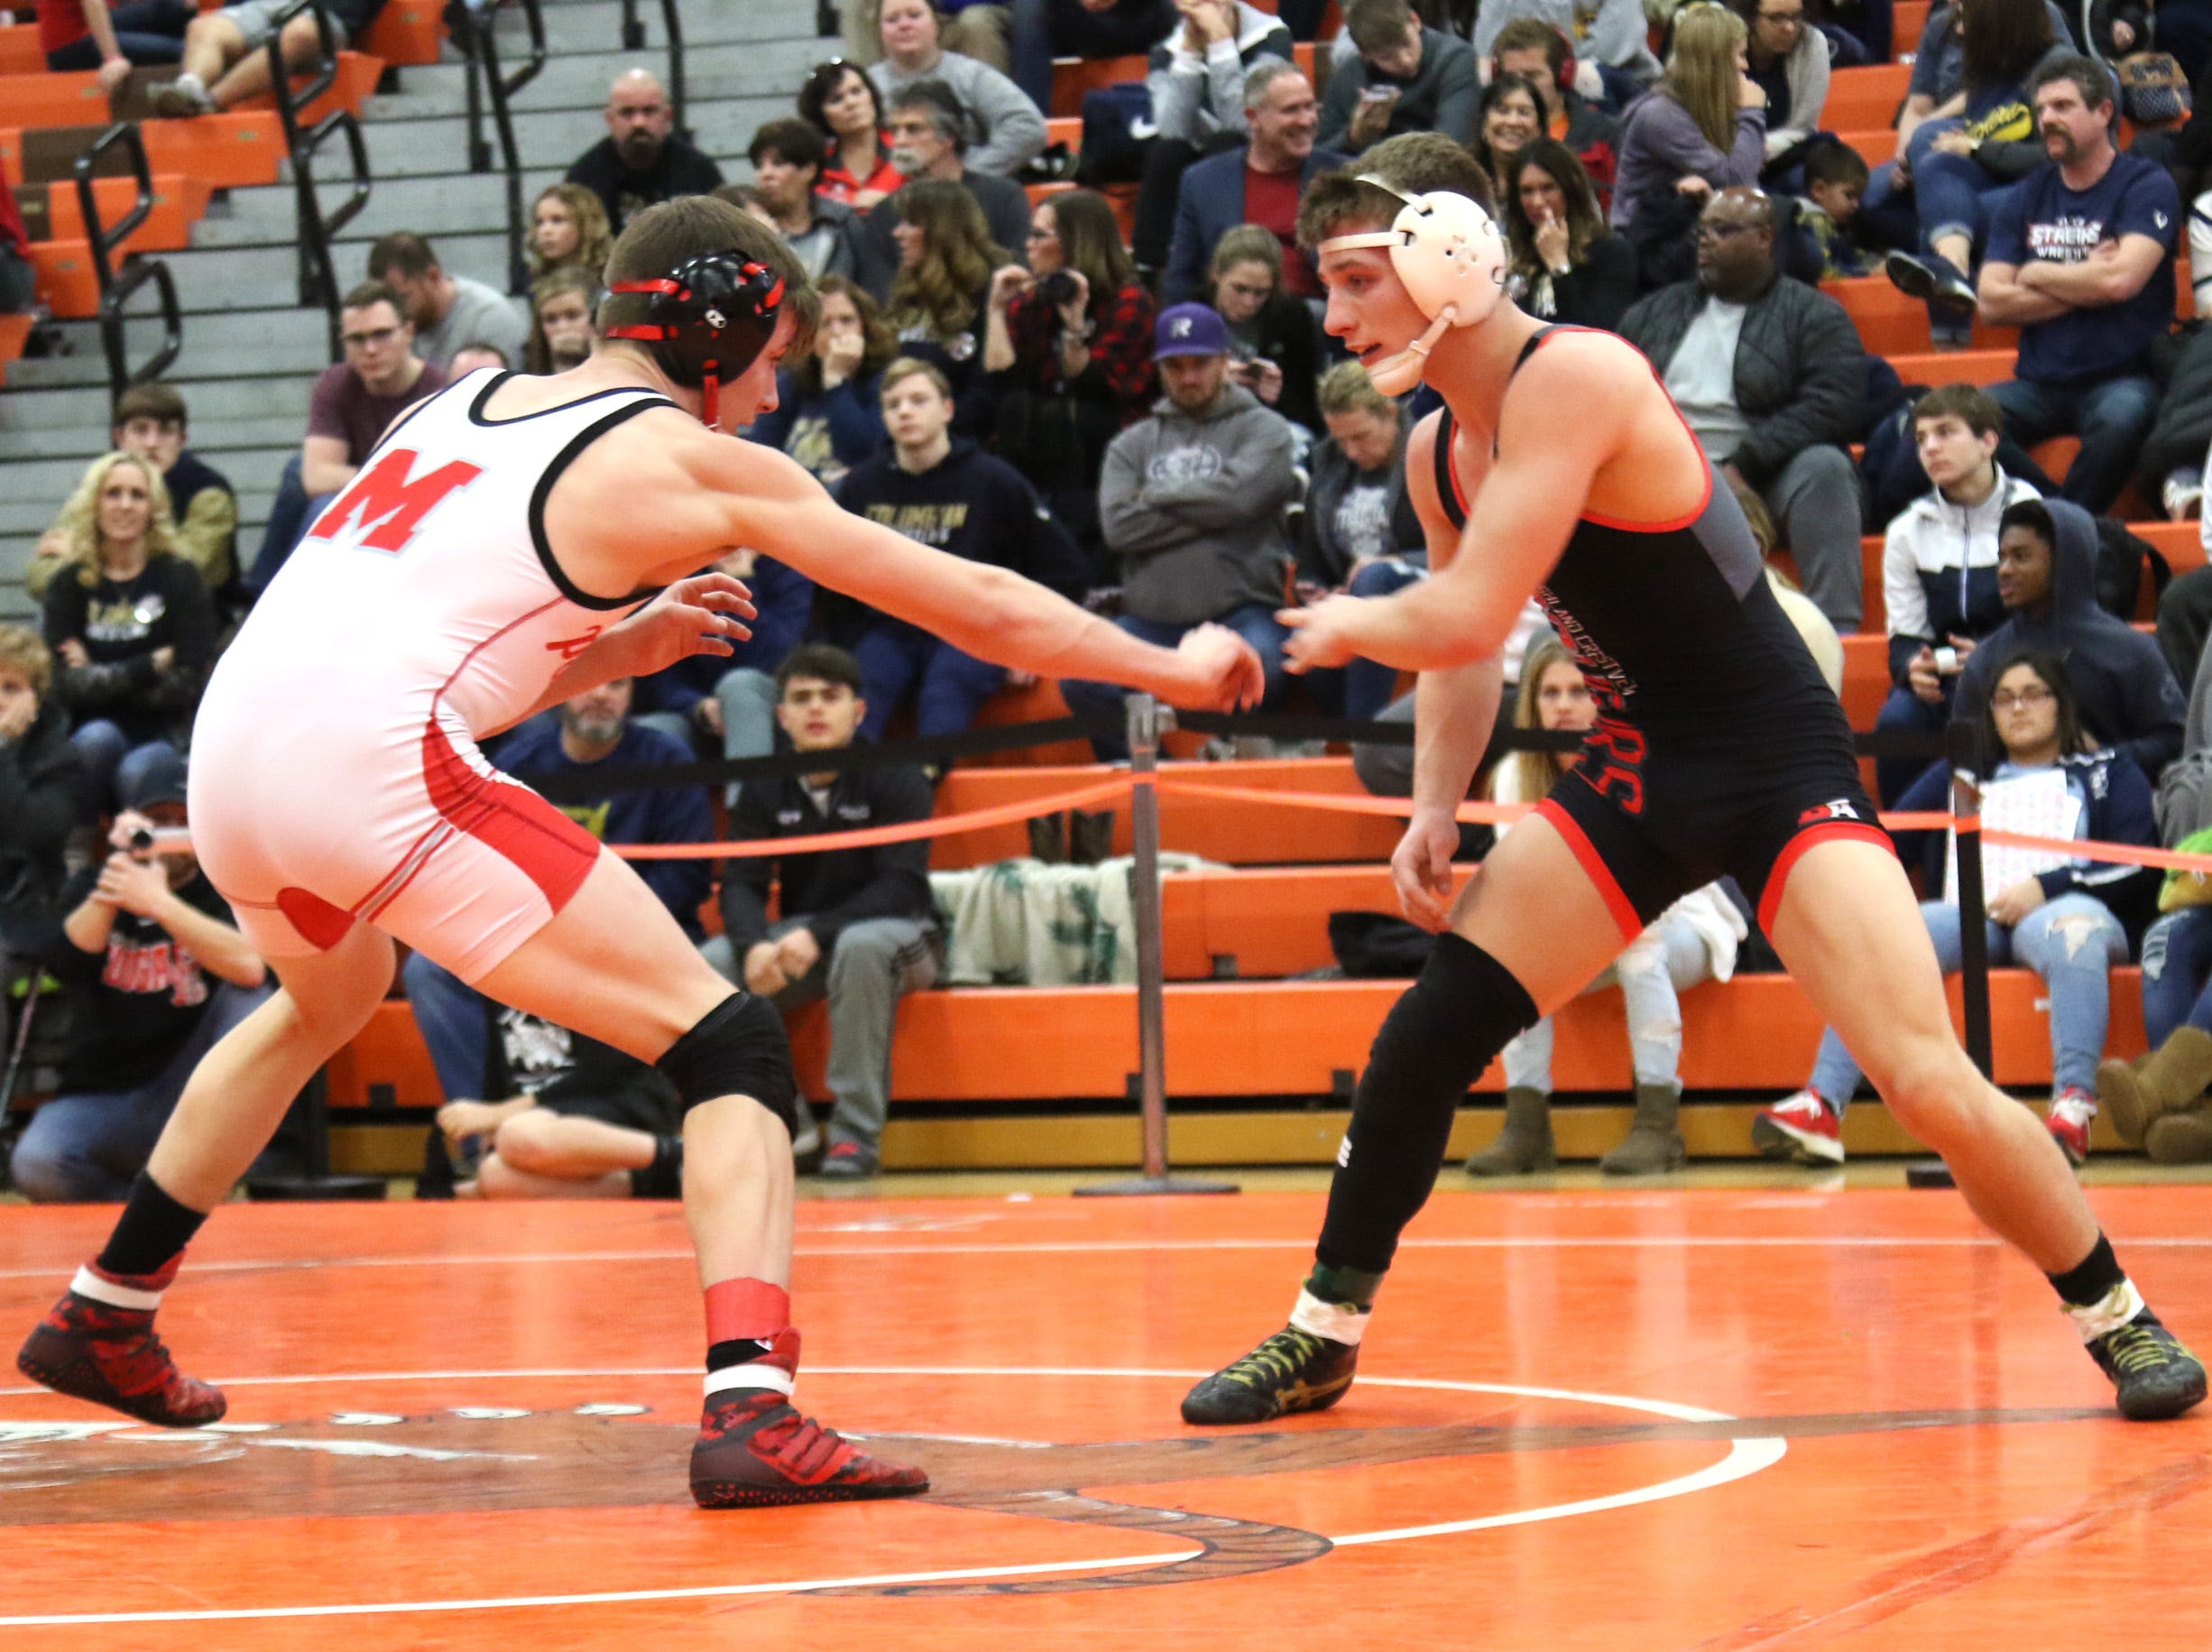 Crestview's Dakota BLanton spars with Akron Manchester's Jake White during the final matches at the JC Gorman Wrestling Tournament on Saturday.